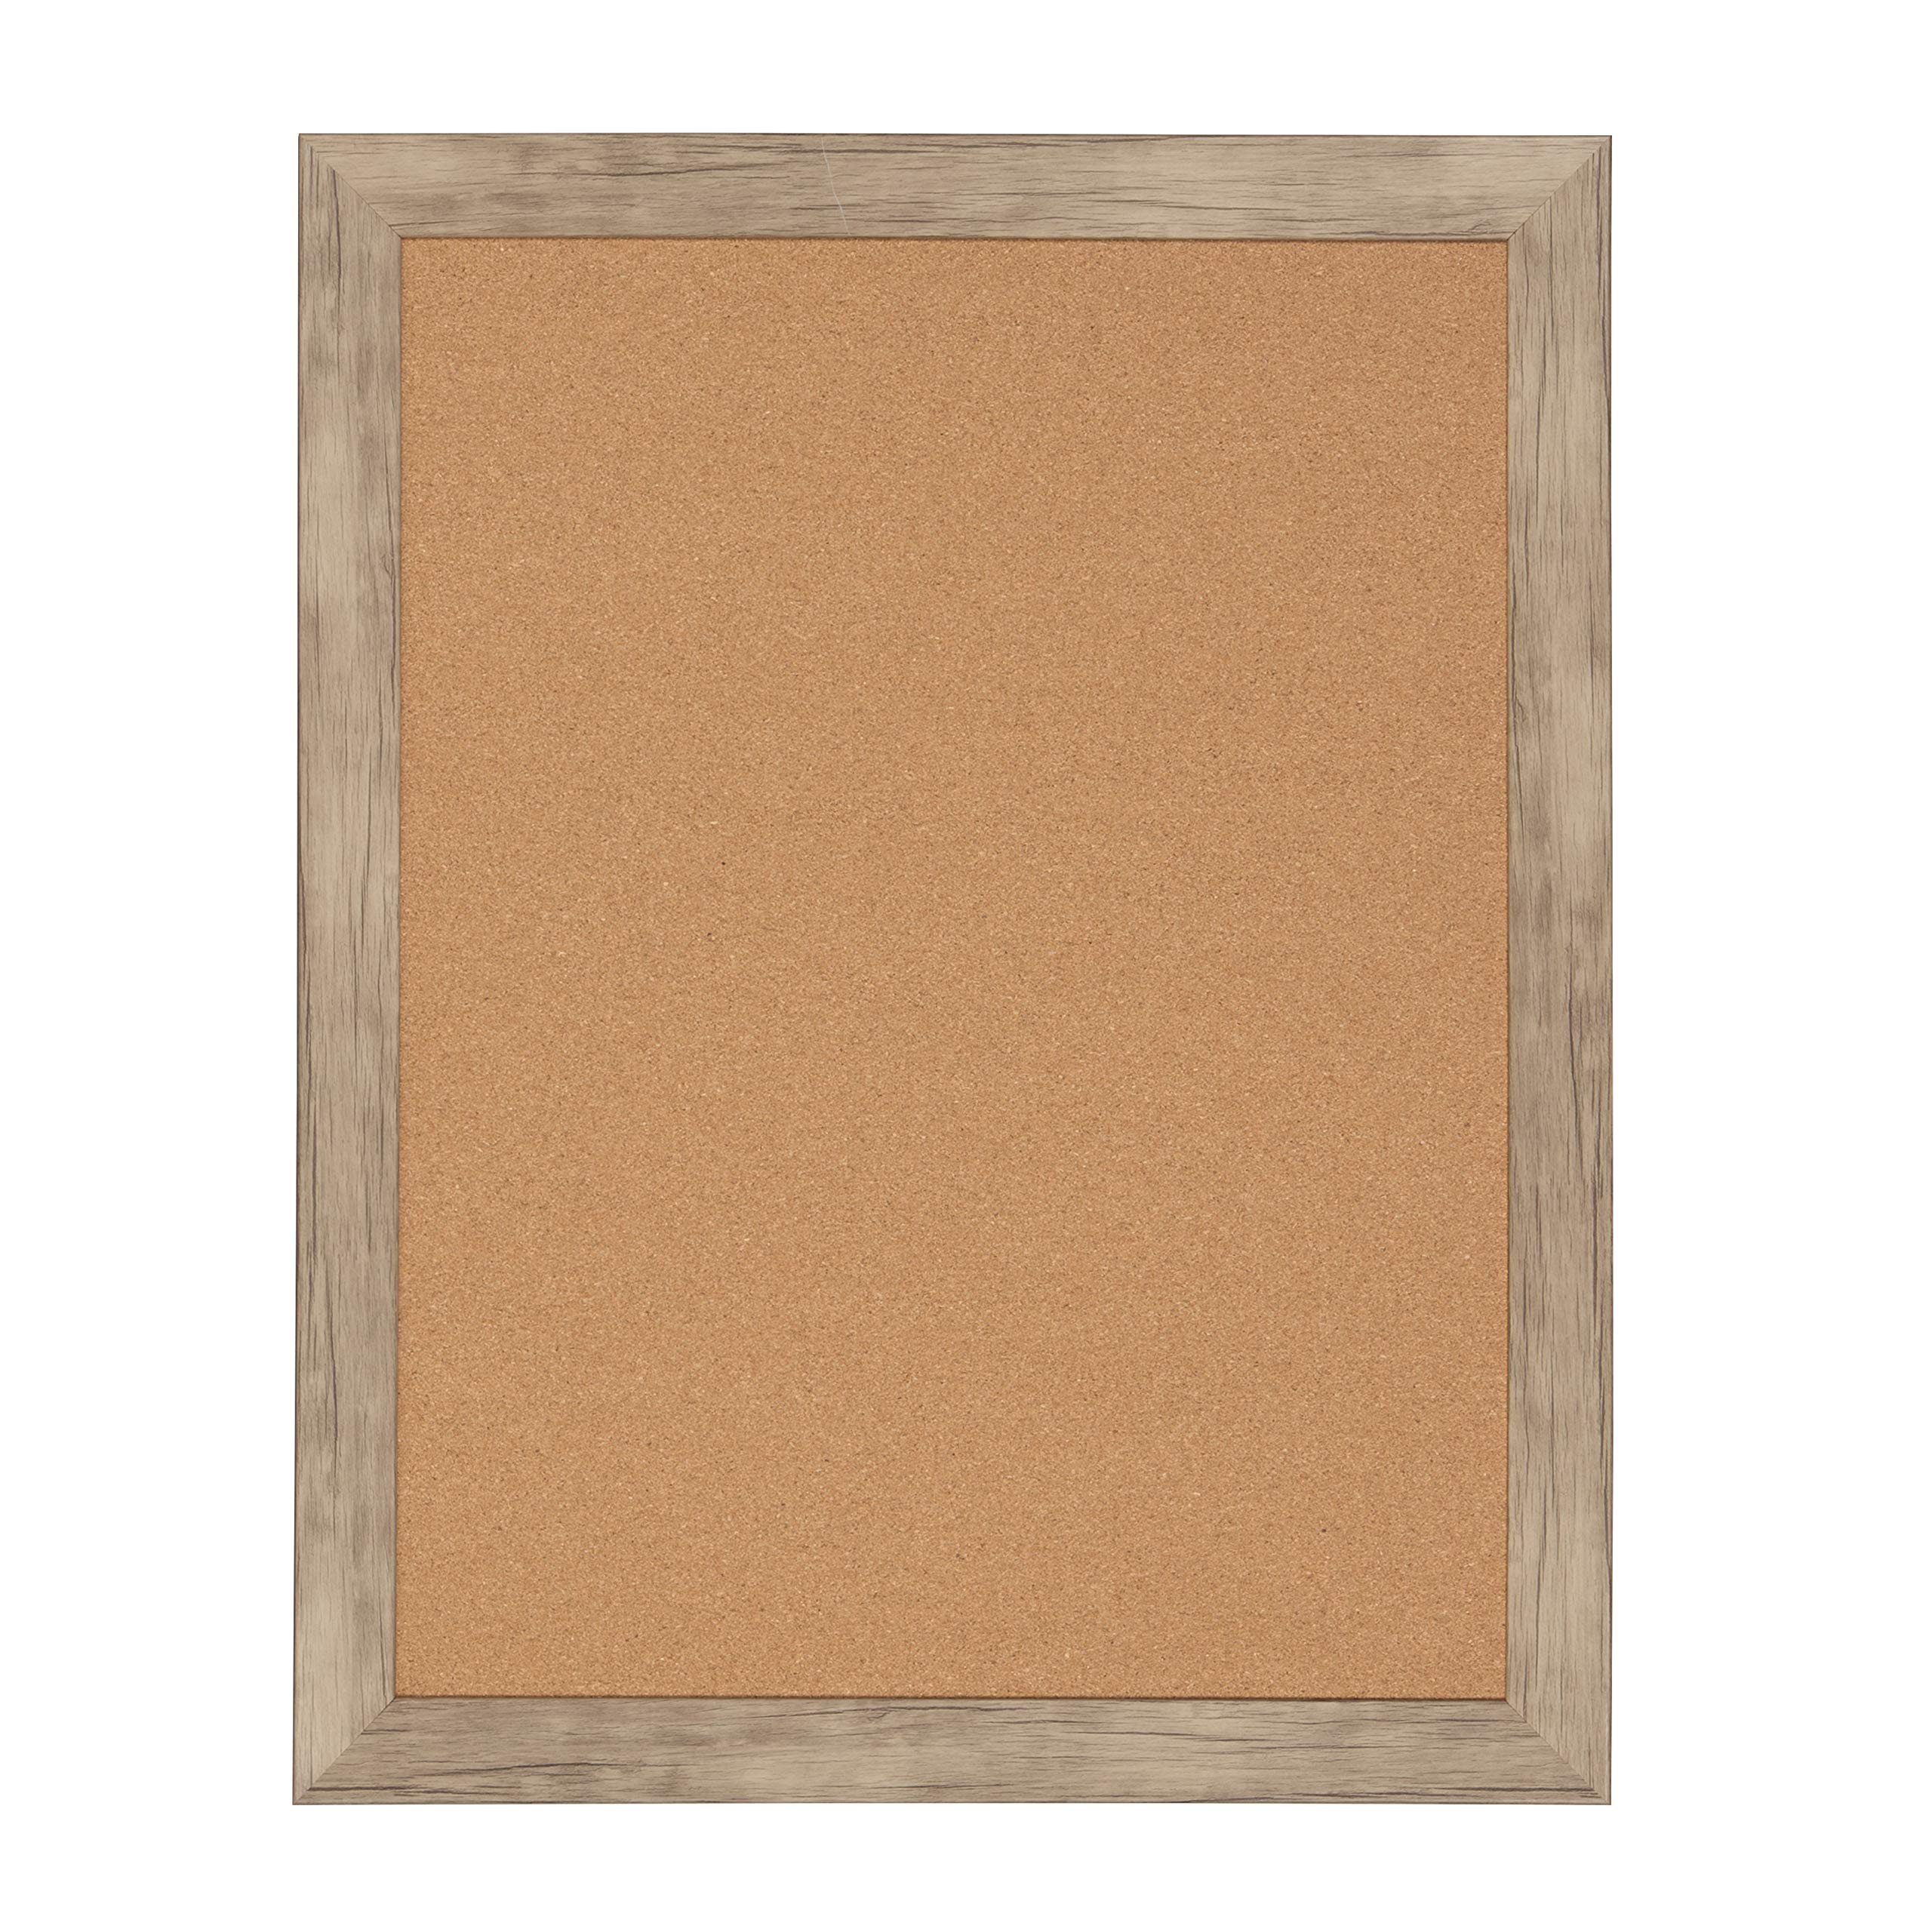 DesignOvation Beatrice Framed Corkboard, 23x29, Rustic Brown